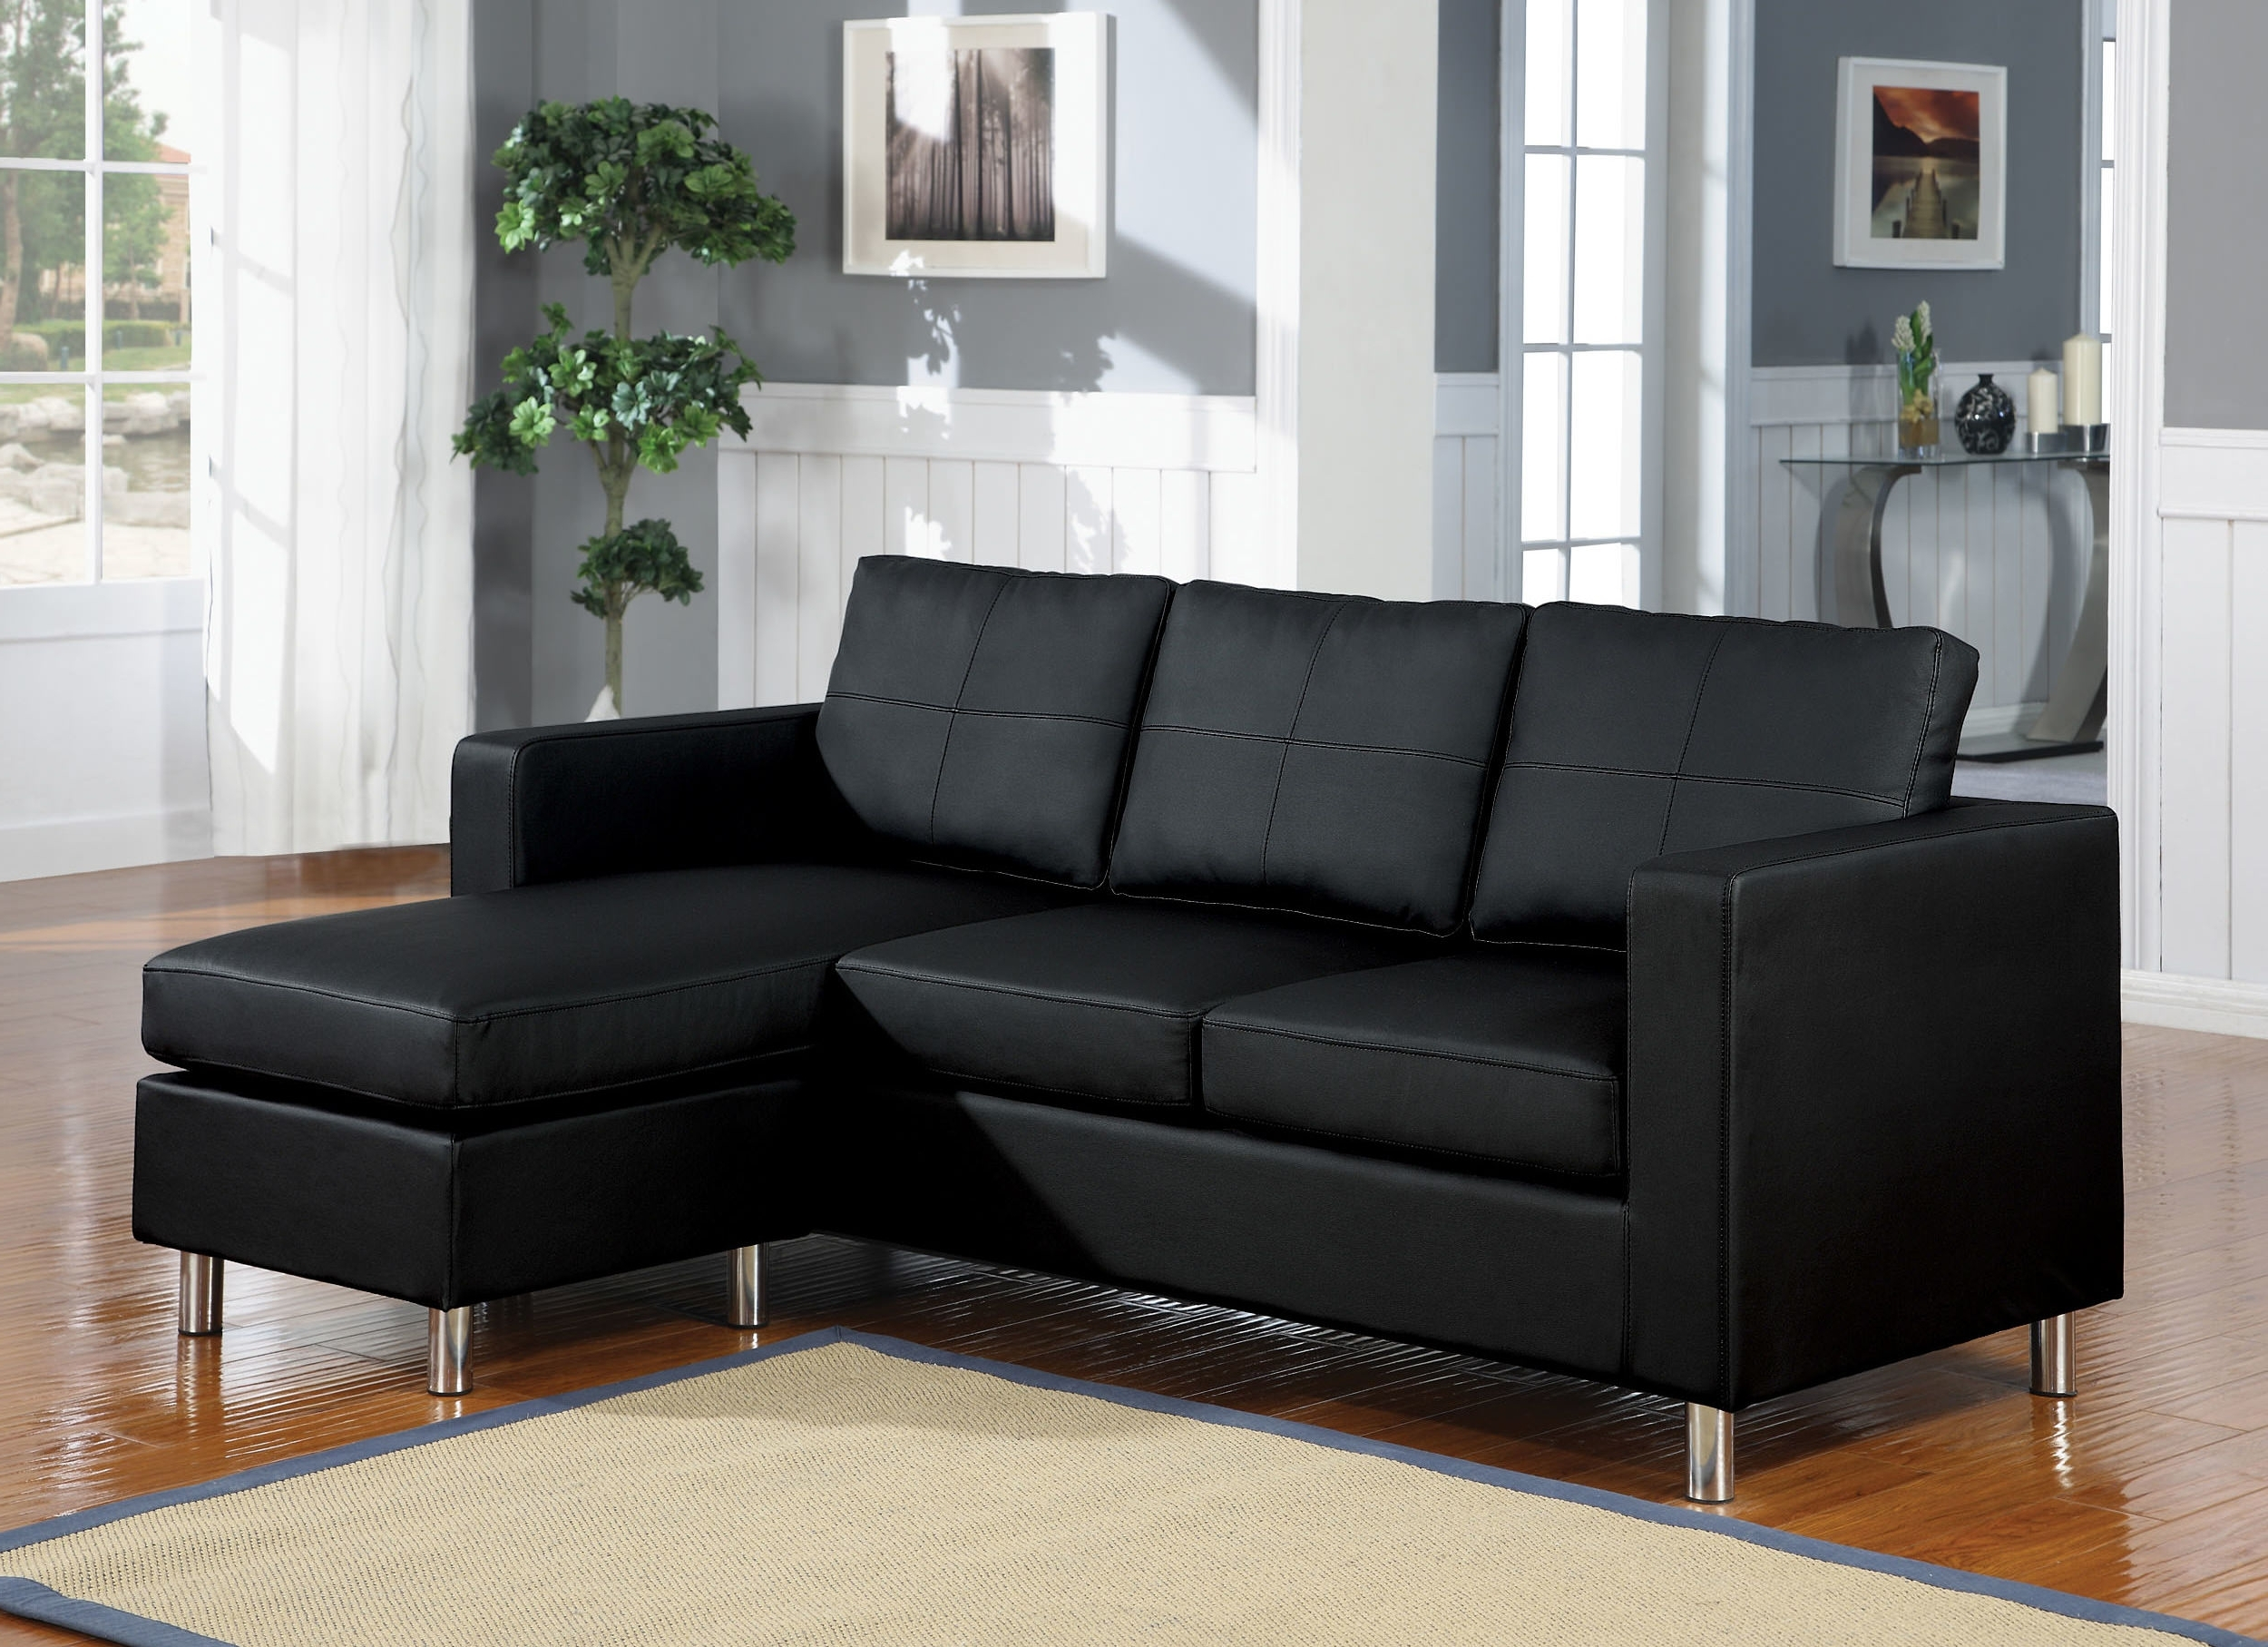 Design Intended For Leather Modular Sectional Sofas (View 9 of 20)